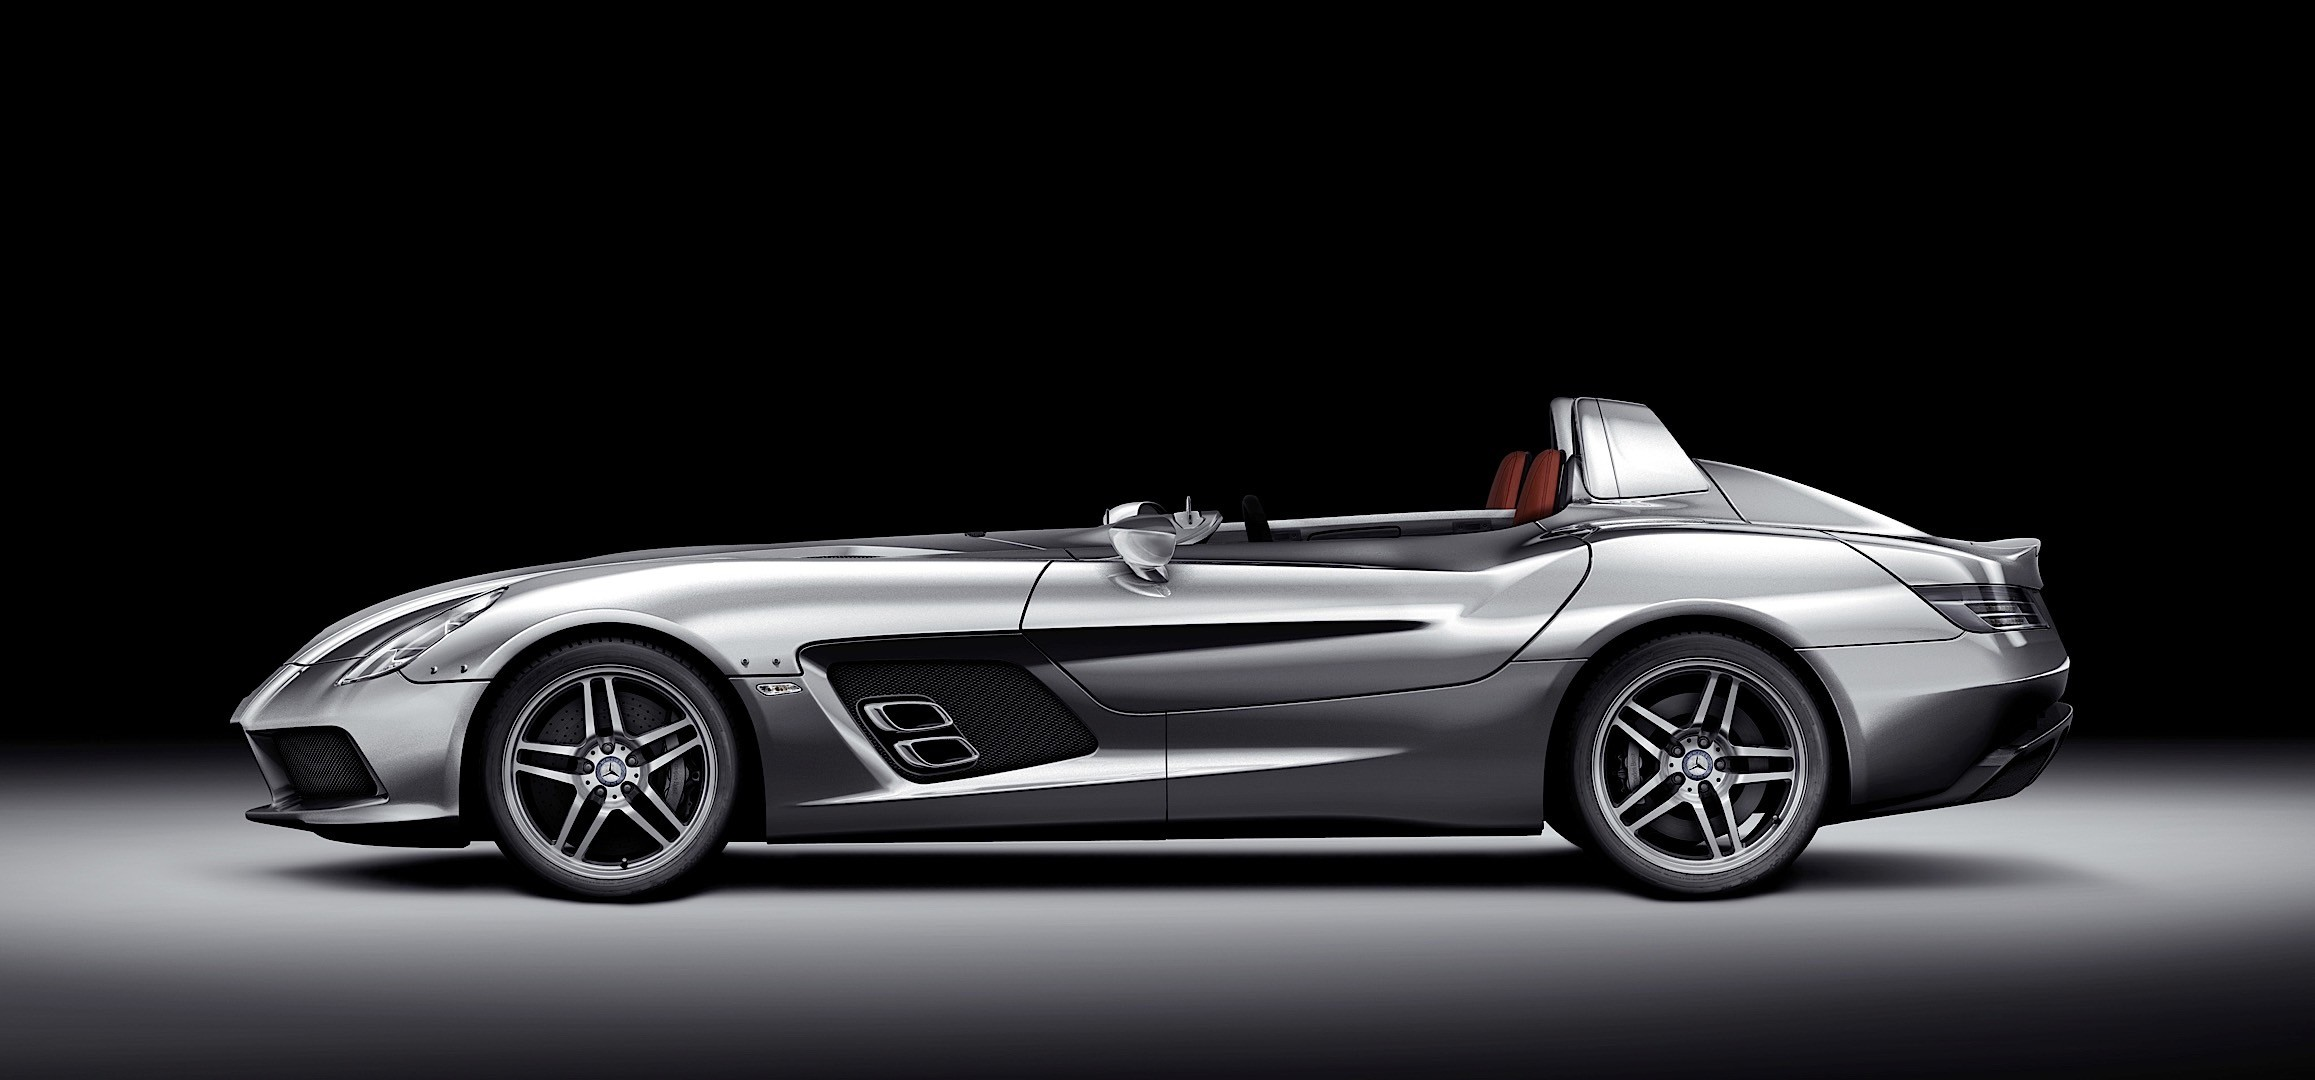 Mercedes benz slr stirling moss 2009 autoevolution for Mercedes benz slr